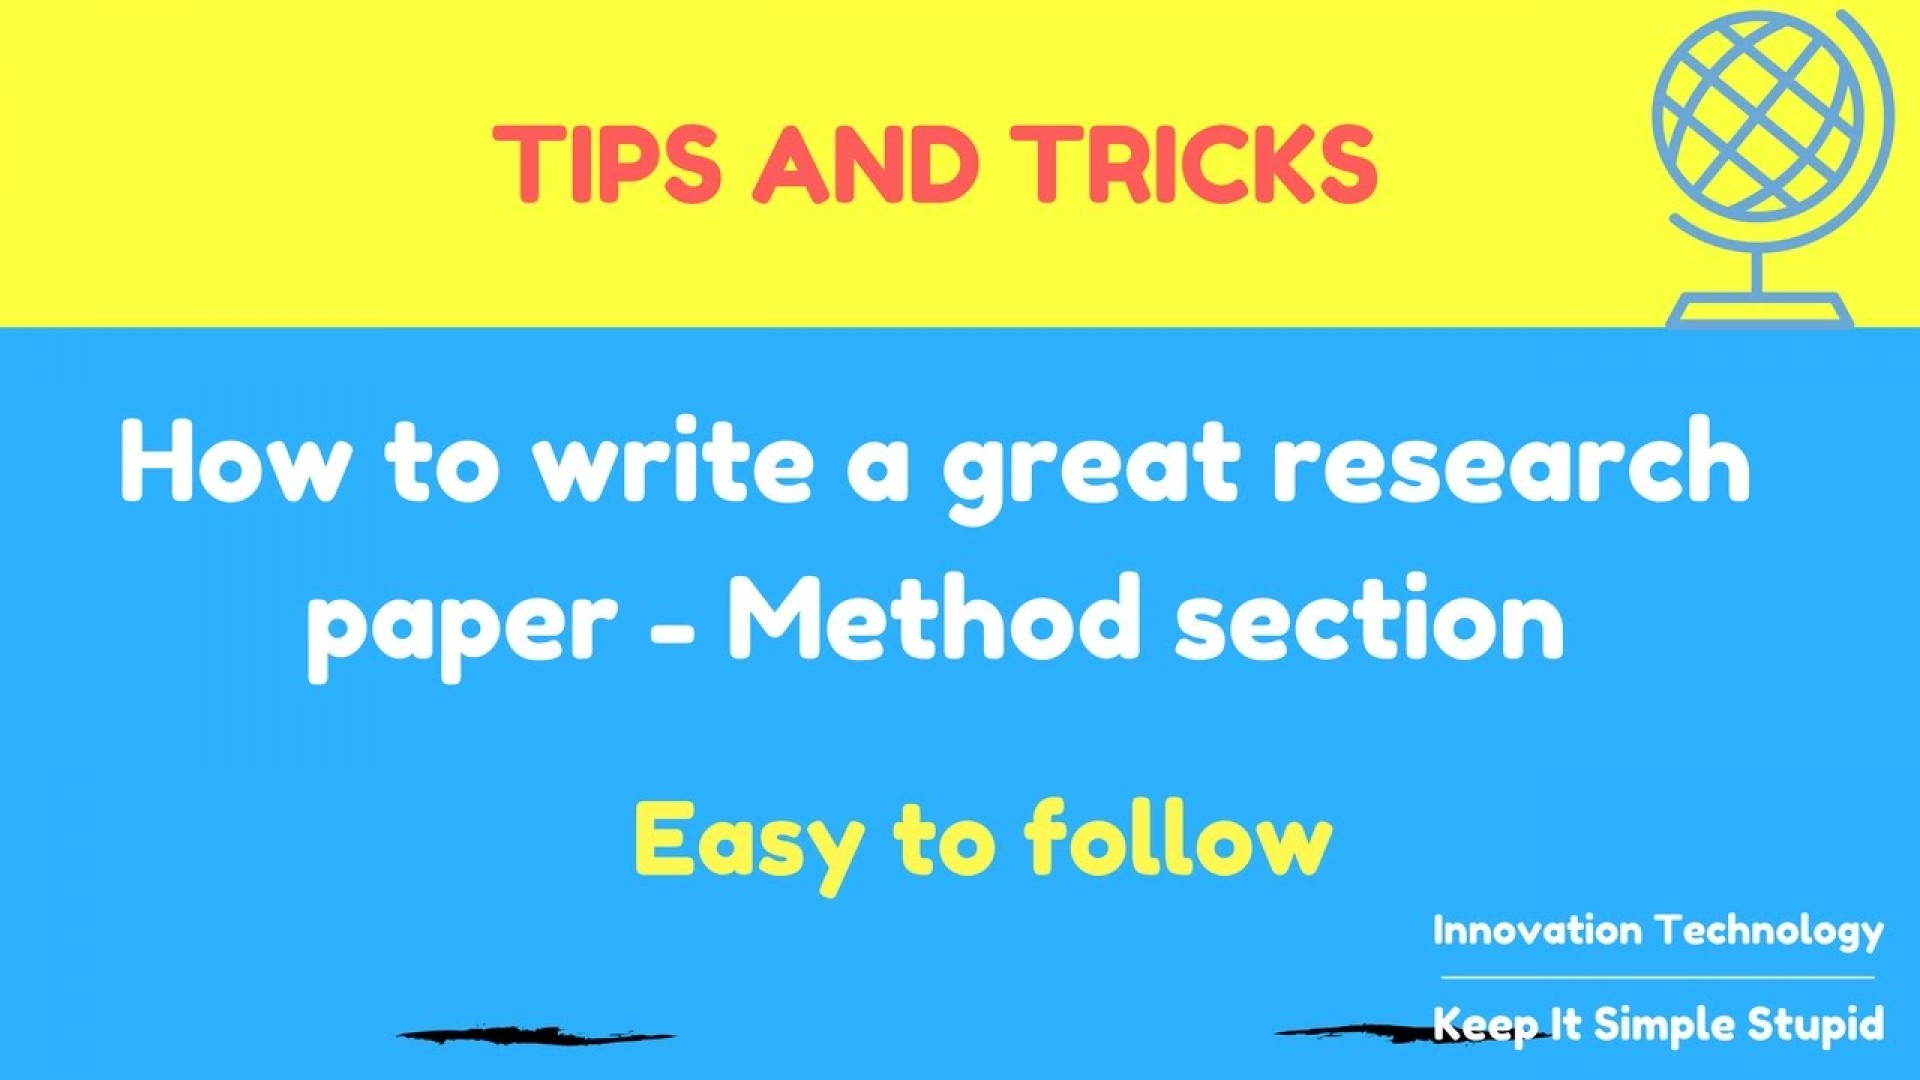 002 Research Paper Method Magnificent Apa Results Section Sample Methodology Pdf Example 1920